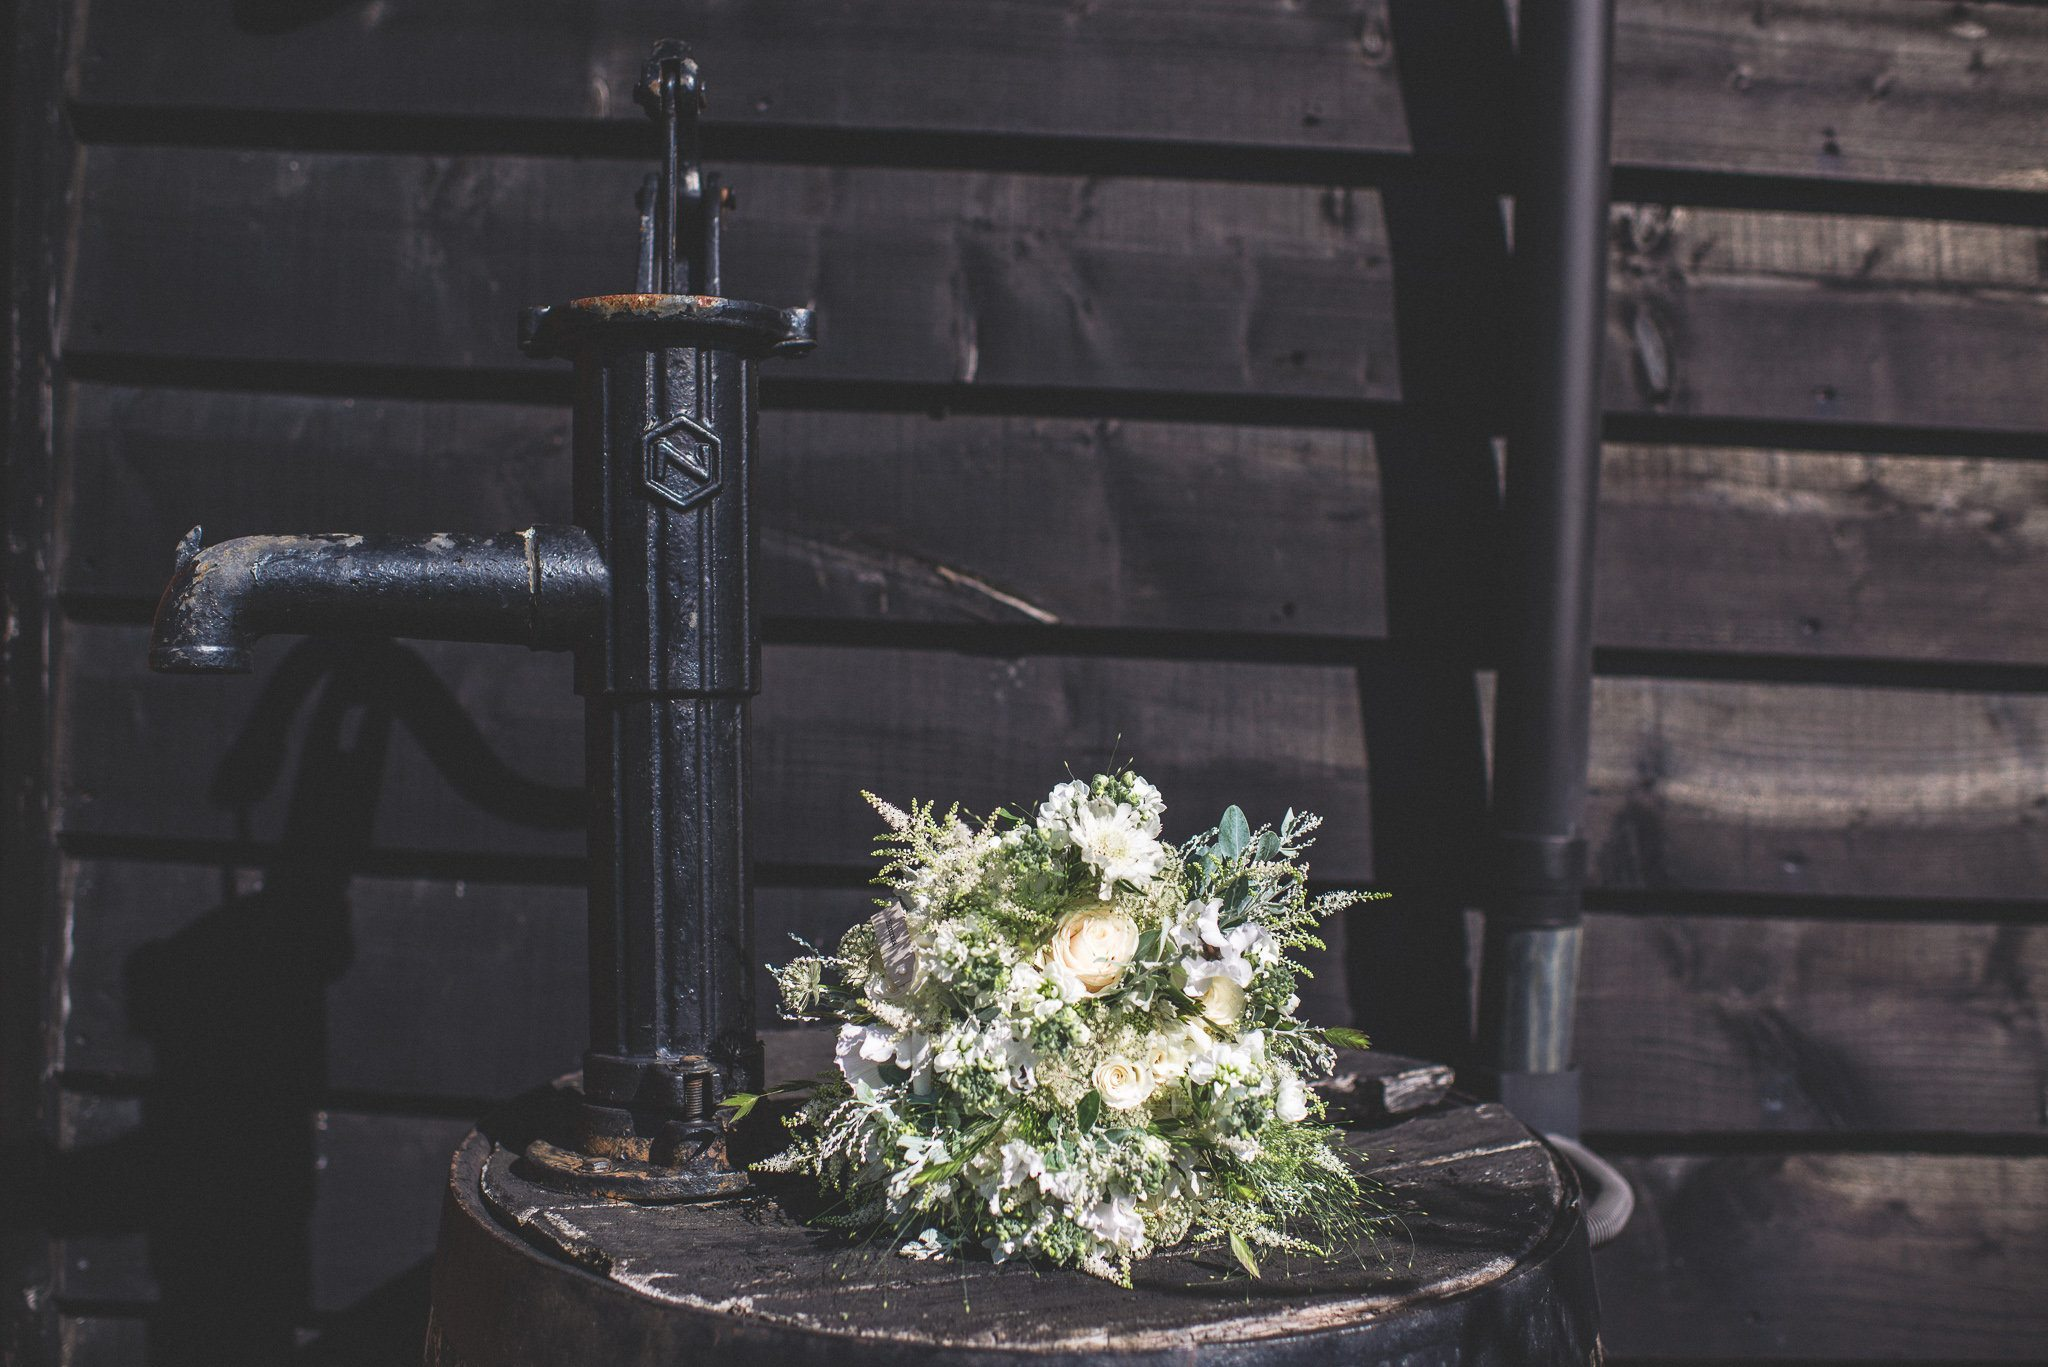 A close up of the bridal bouquet against a black clapboard wall. The bouquet features white and cream flowers, and lots of ferns and deep green foliage